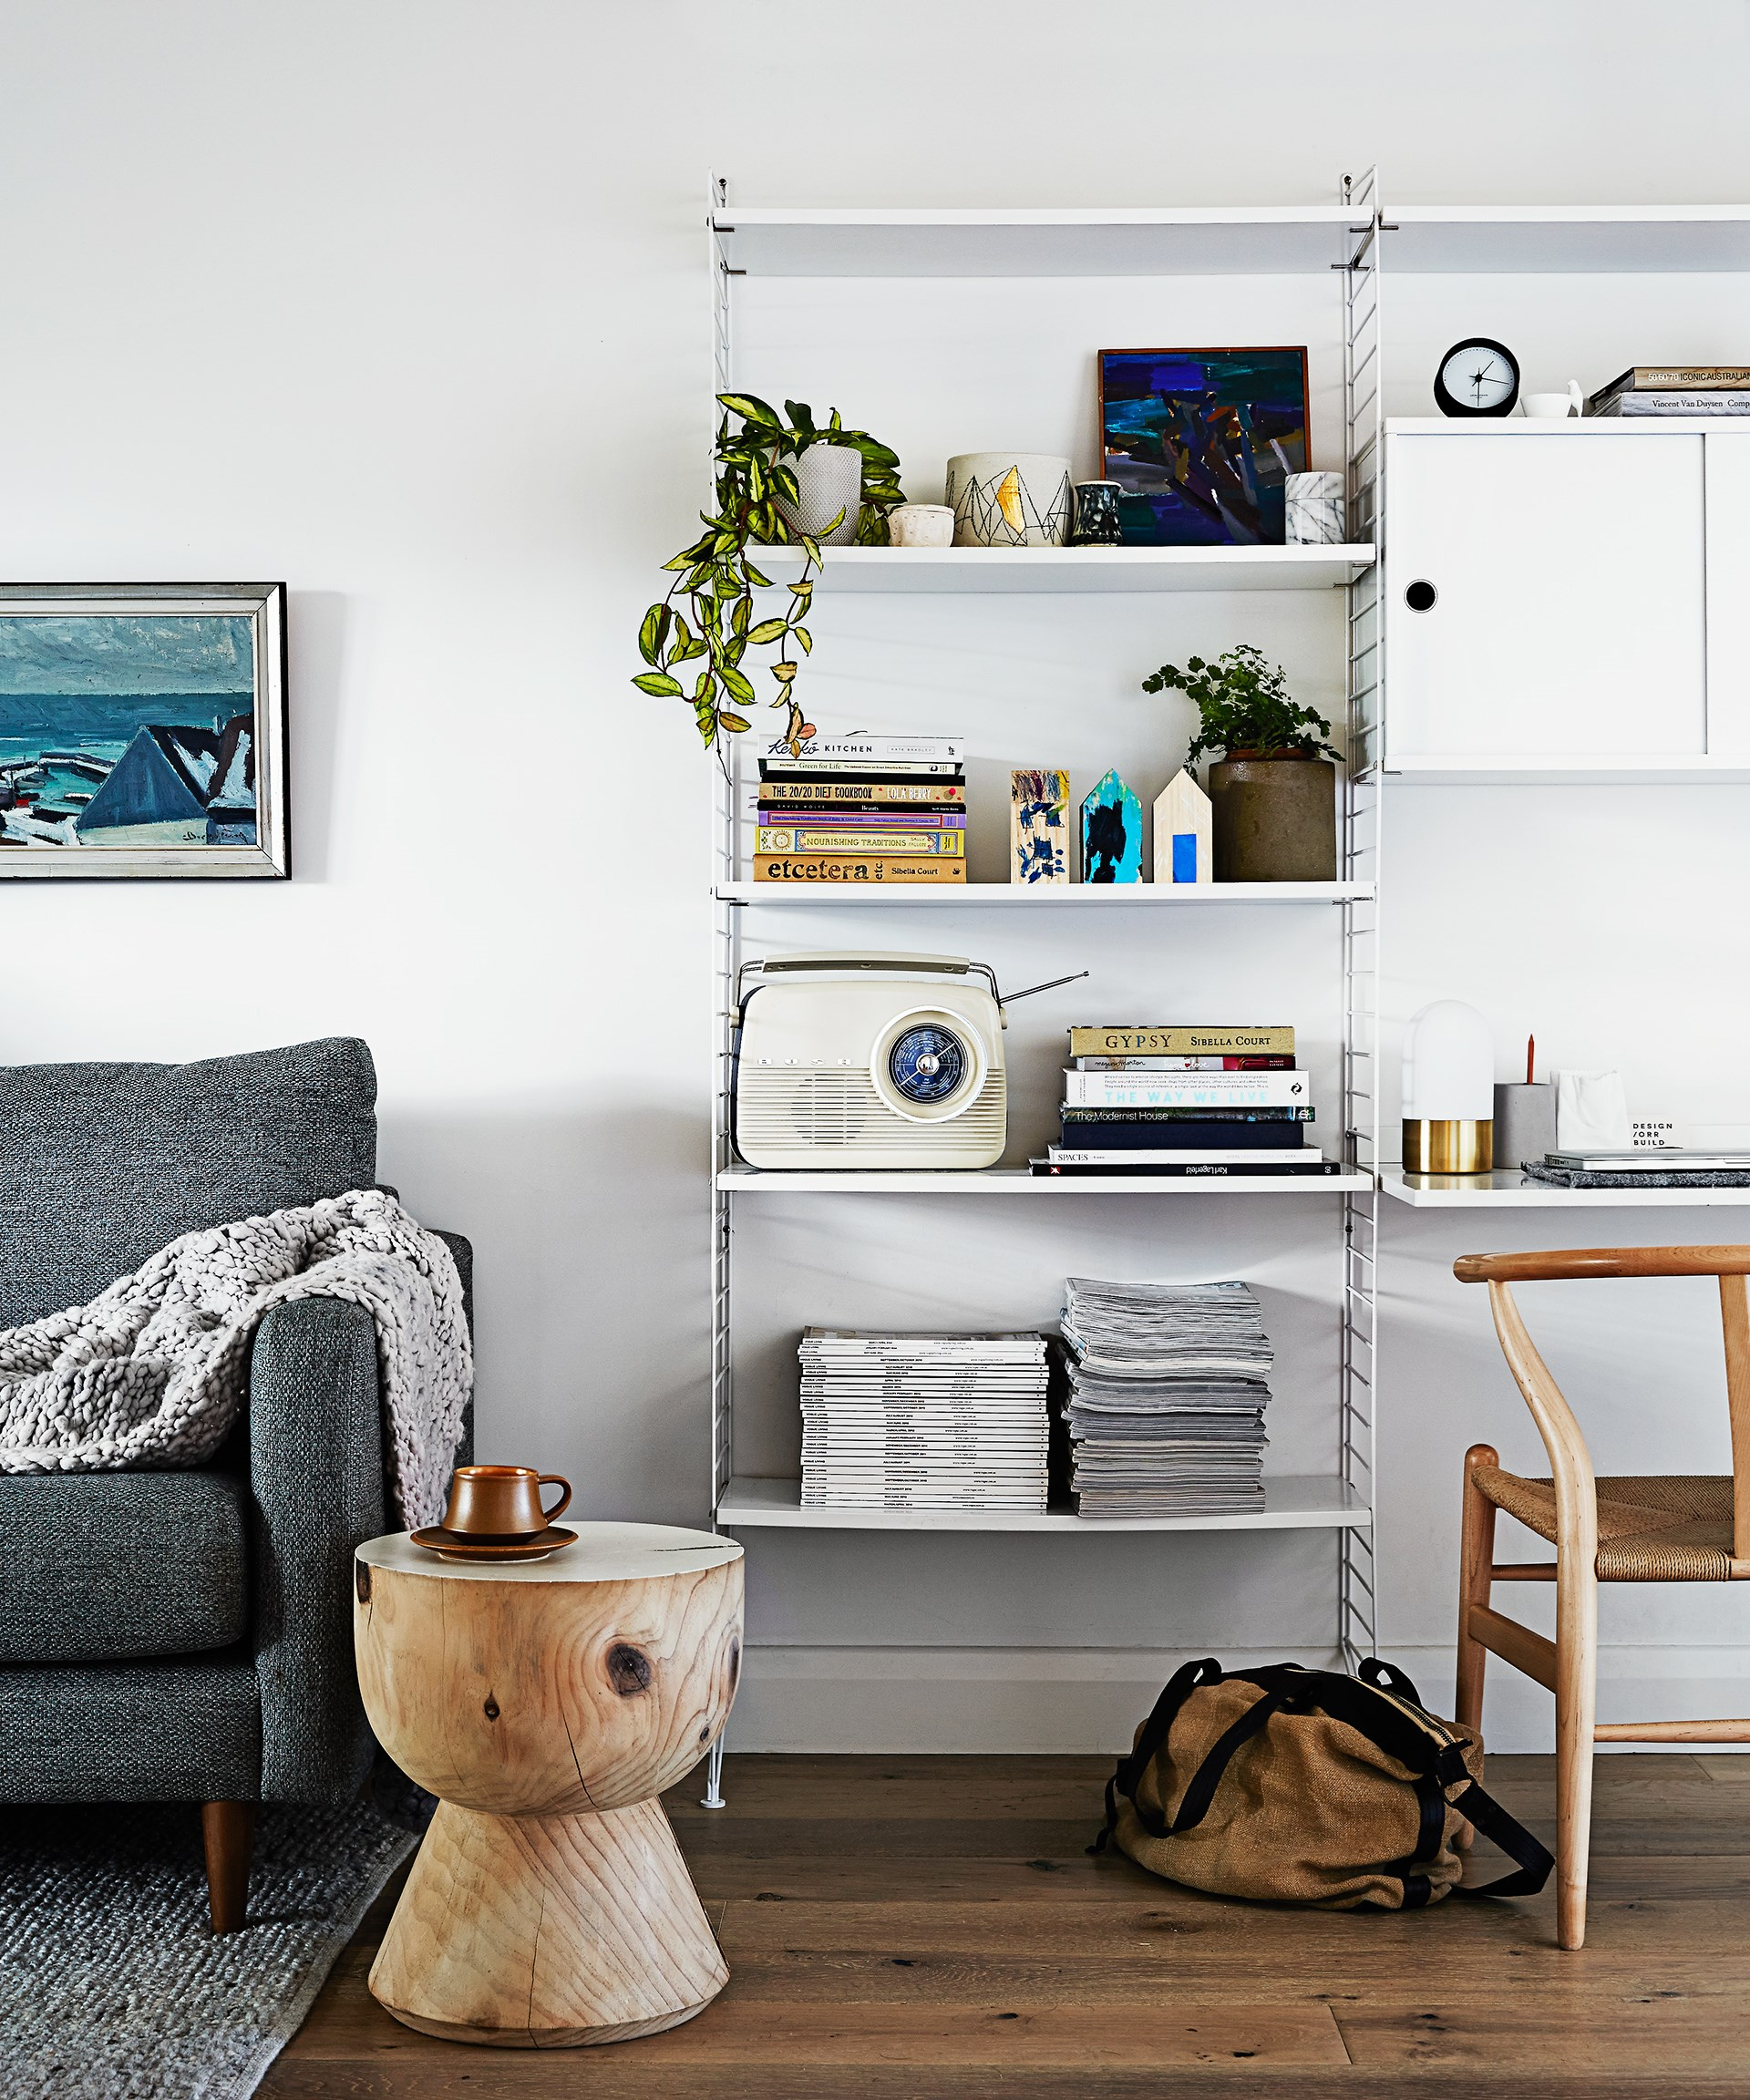 """The designer [String](https://string.se/